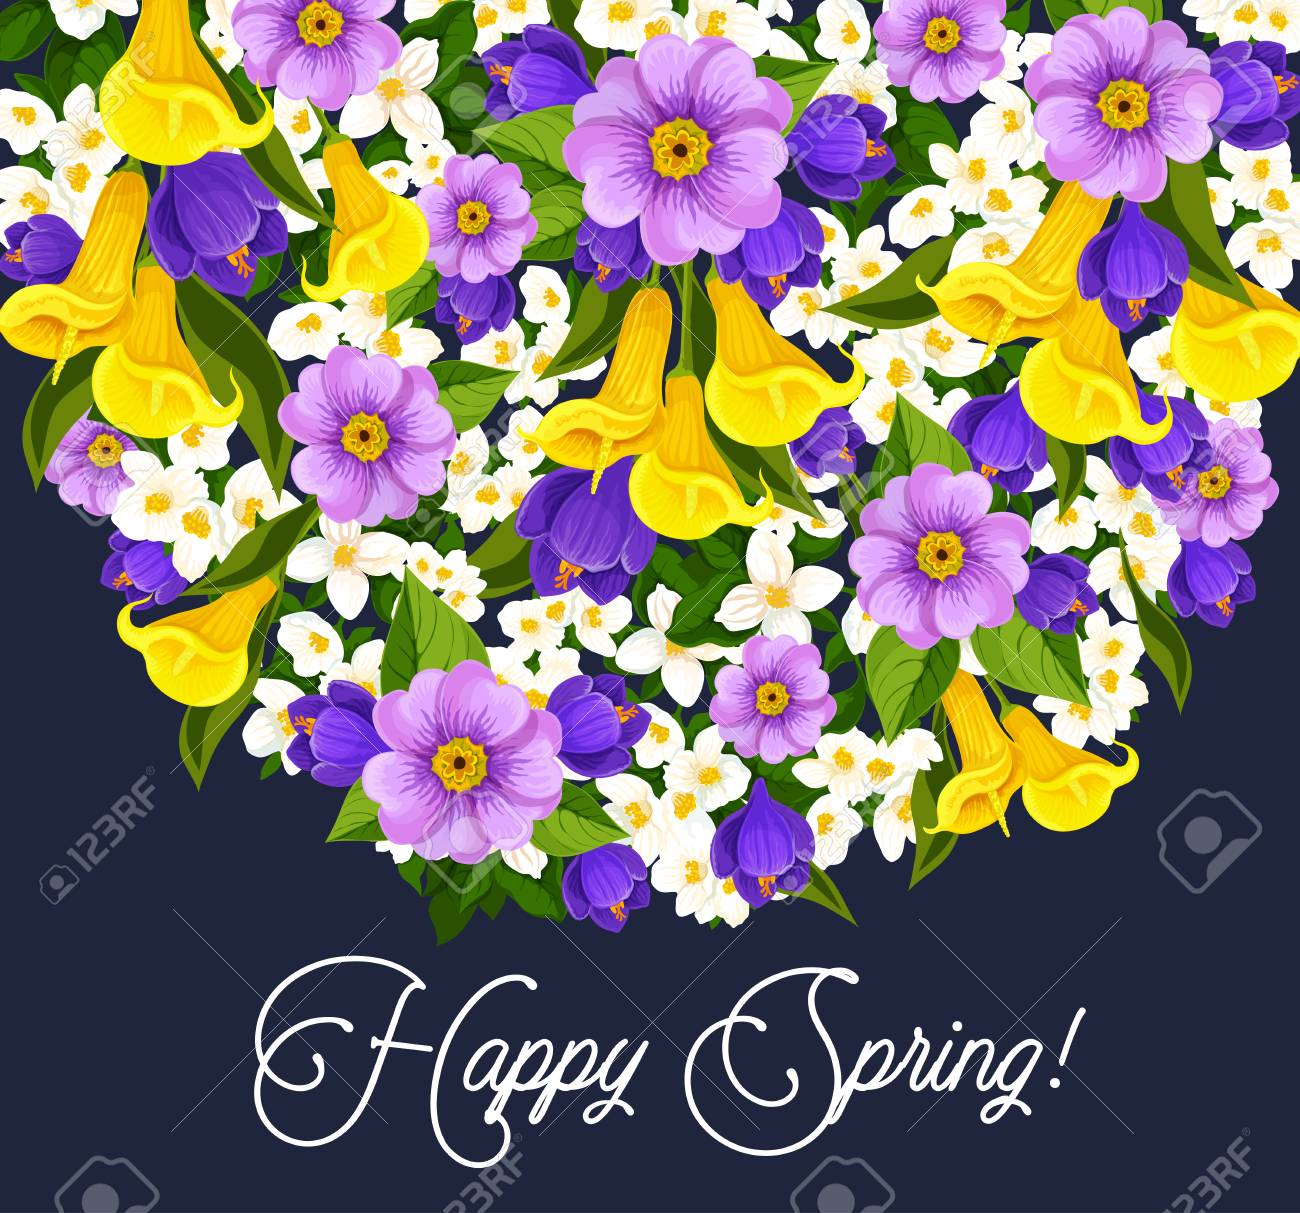 Happy spring greeting card with blooming flowers design on dark happy spring greeting card with blooming flowers design on dark background stock vector 97386205 m4hsunfo